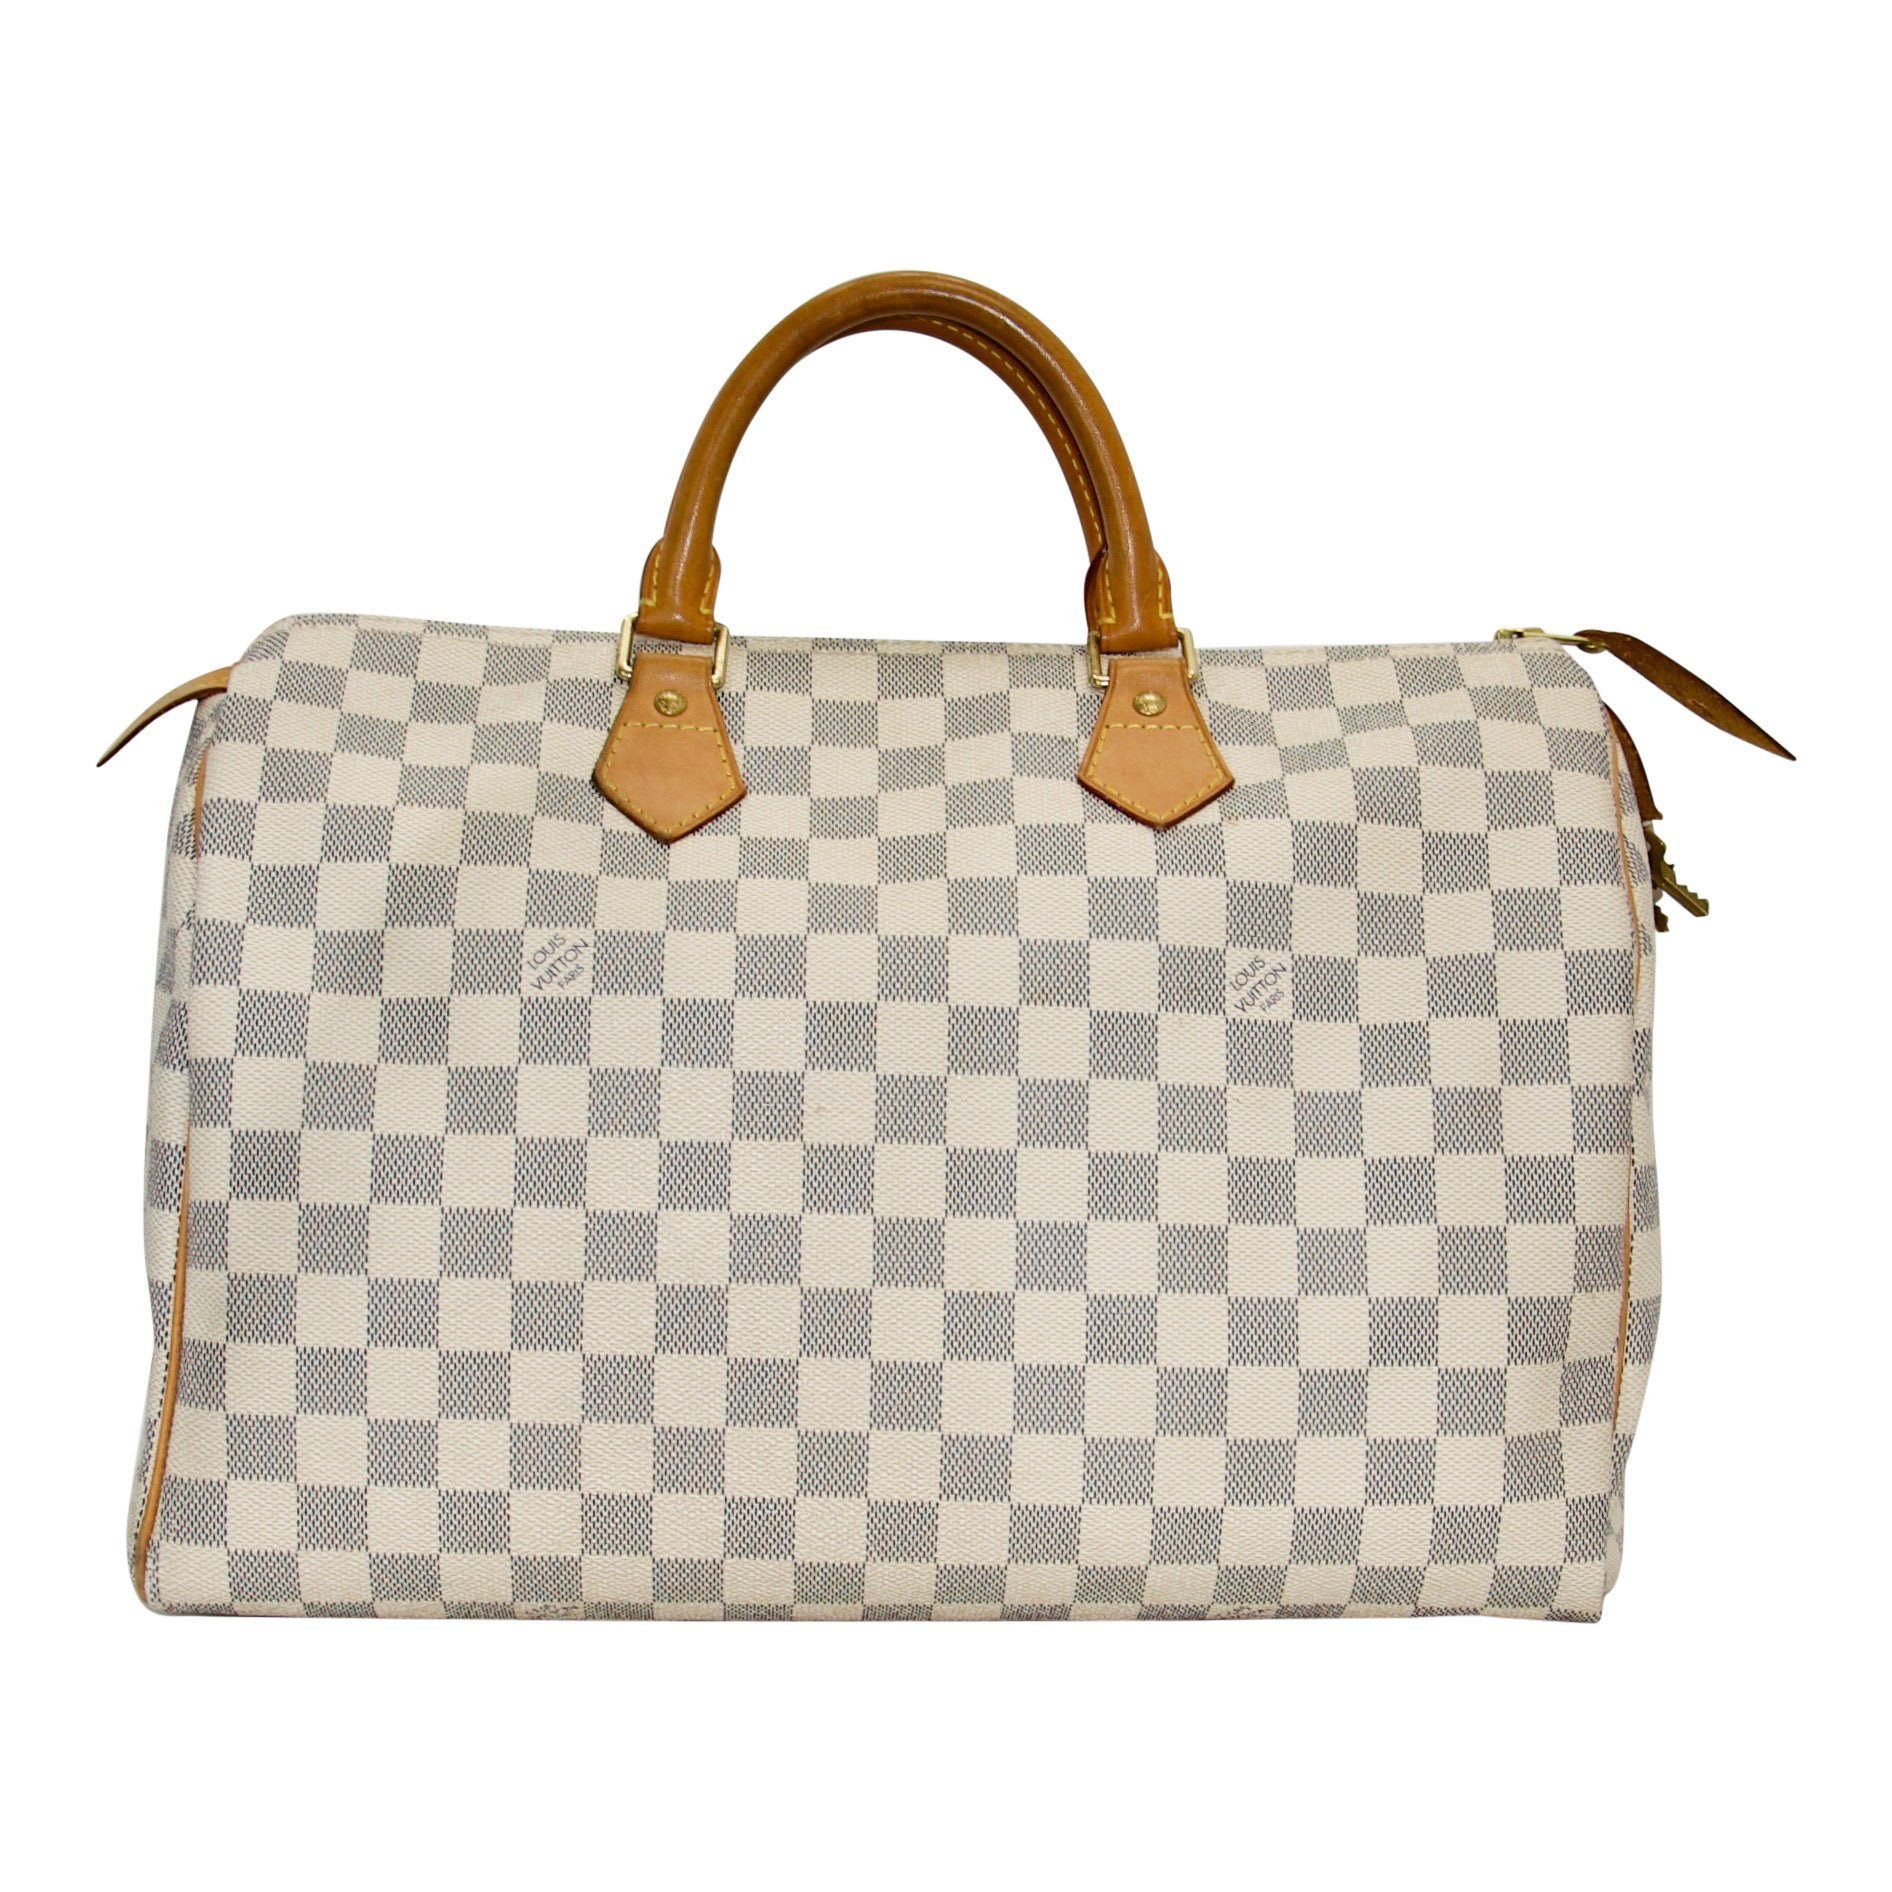 e80c3c78953 Louis Vuitton Damier Azur Speedy 35 - Oliver Jewellery